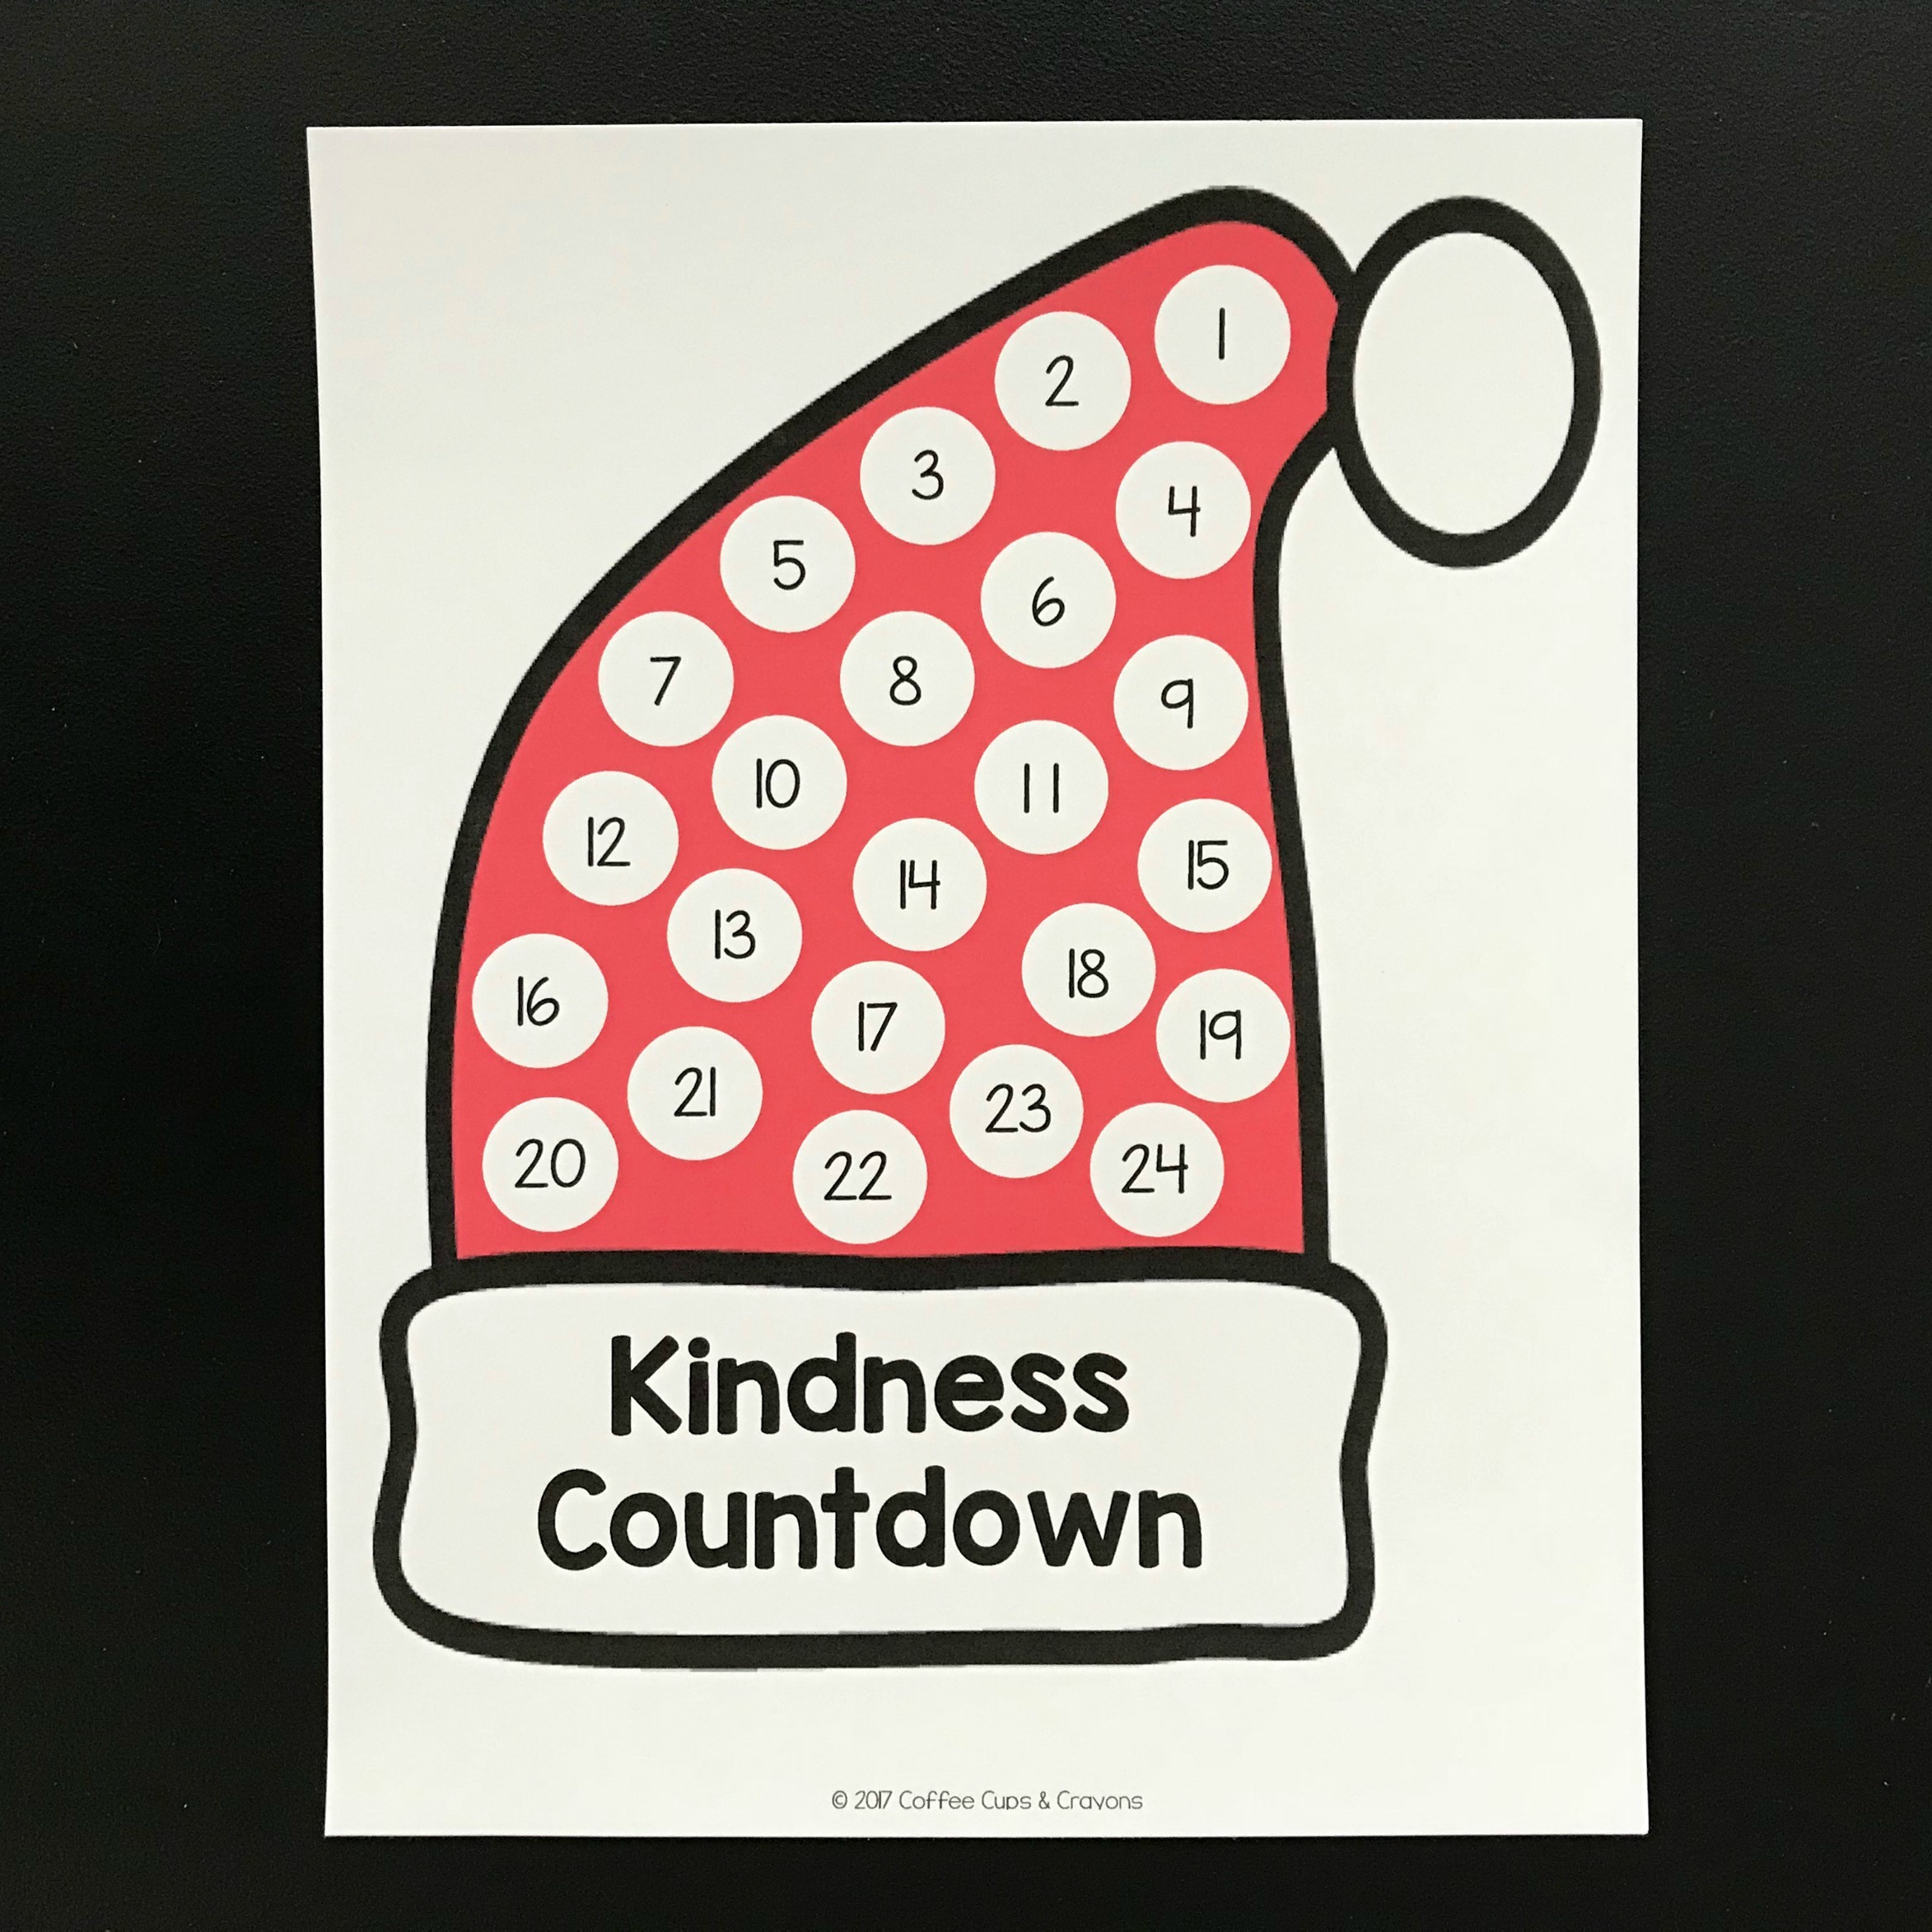 Christmas Kindness Countdown!